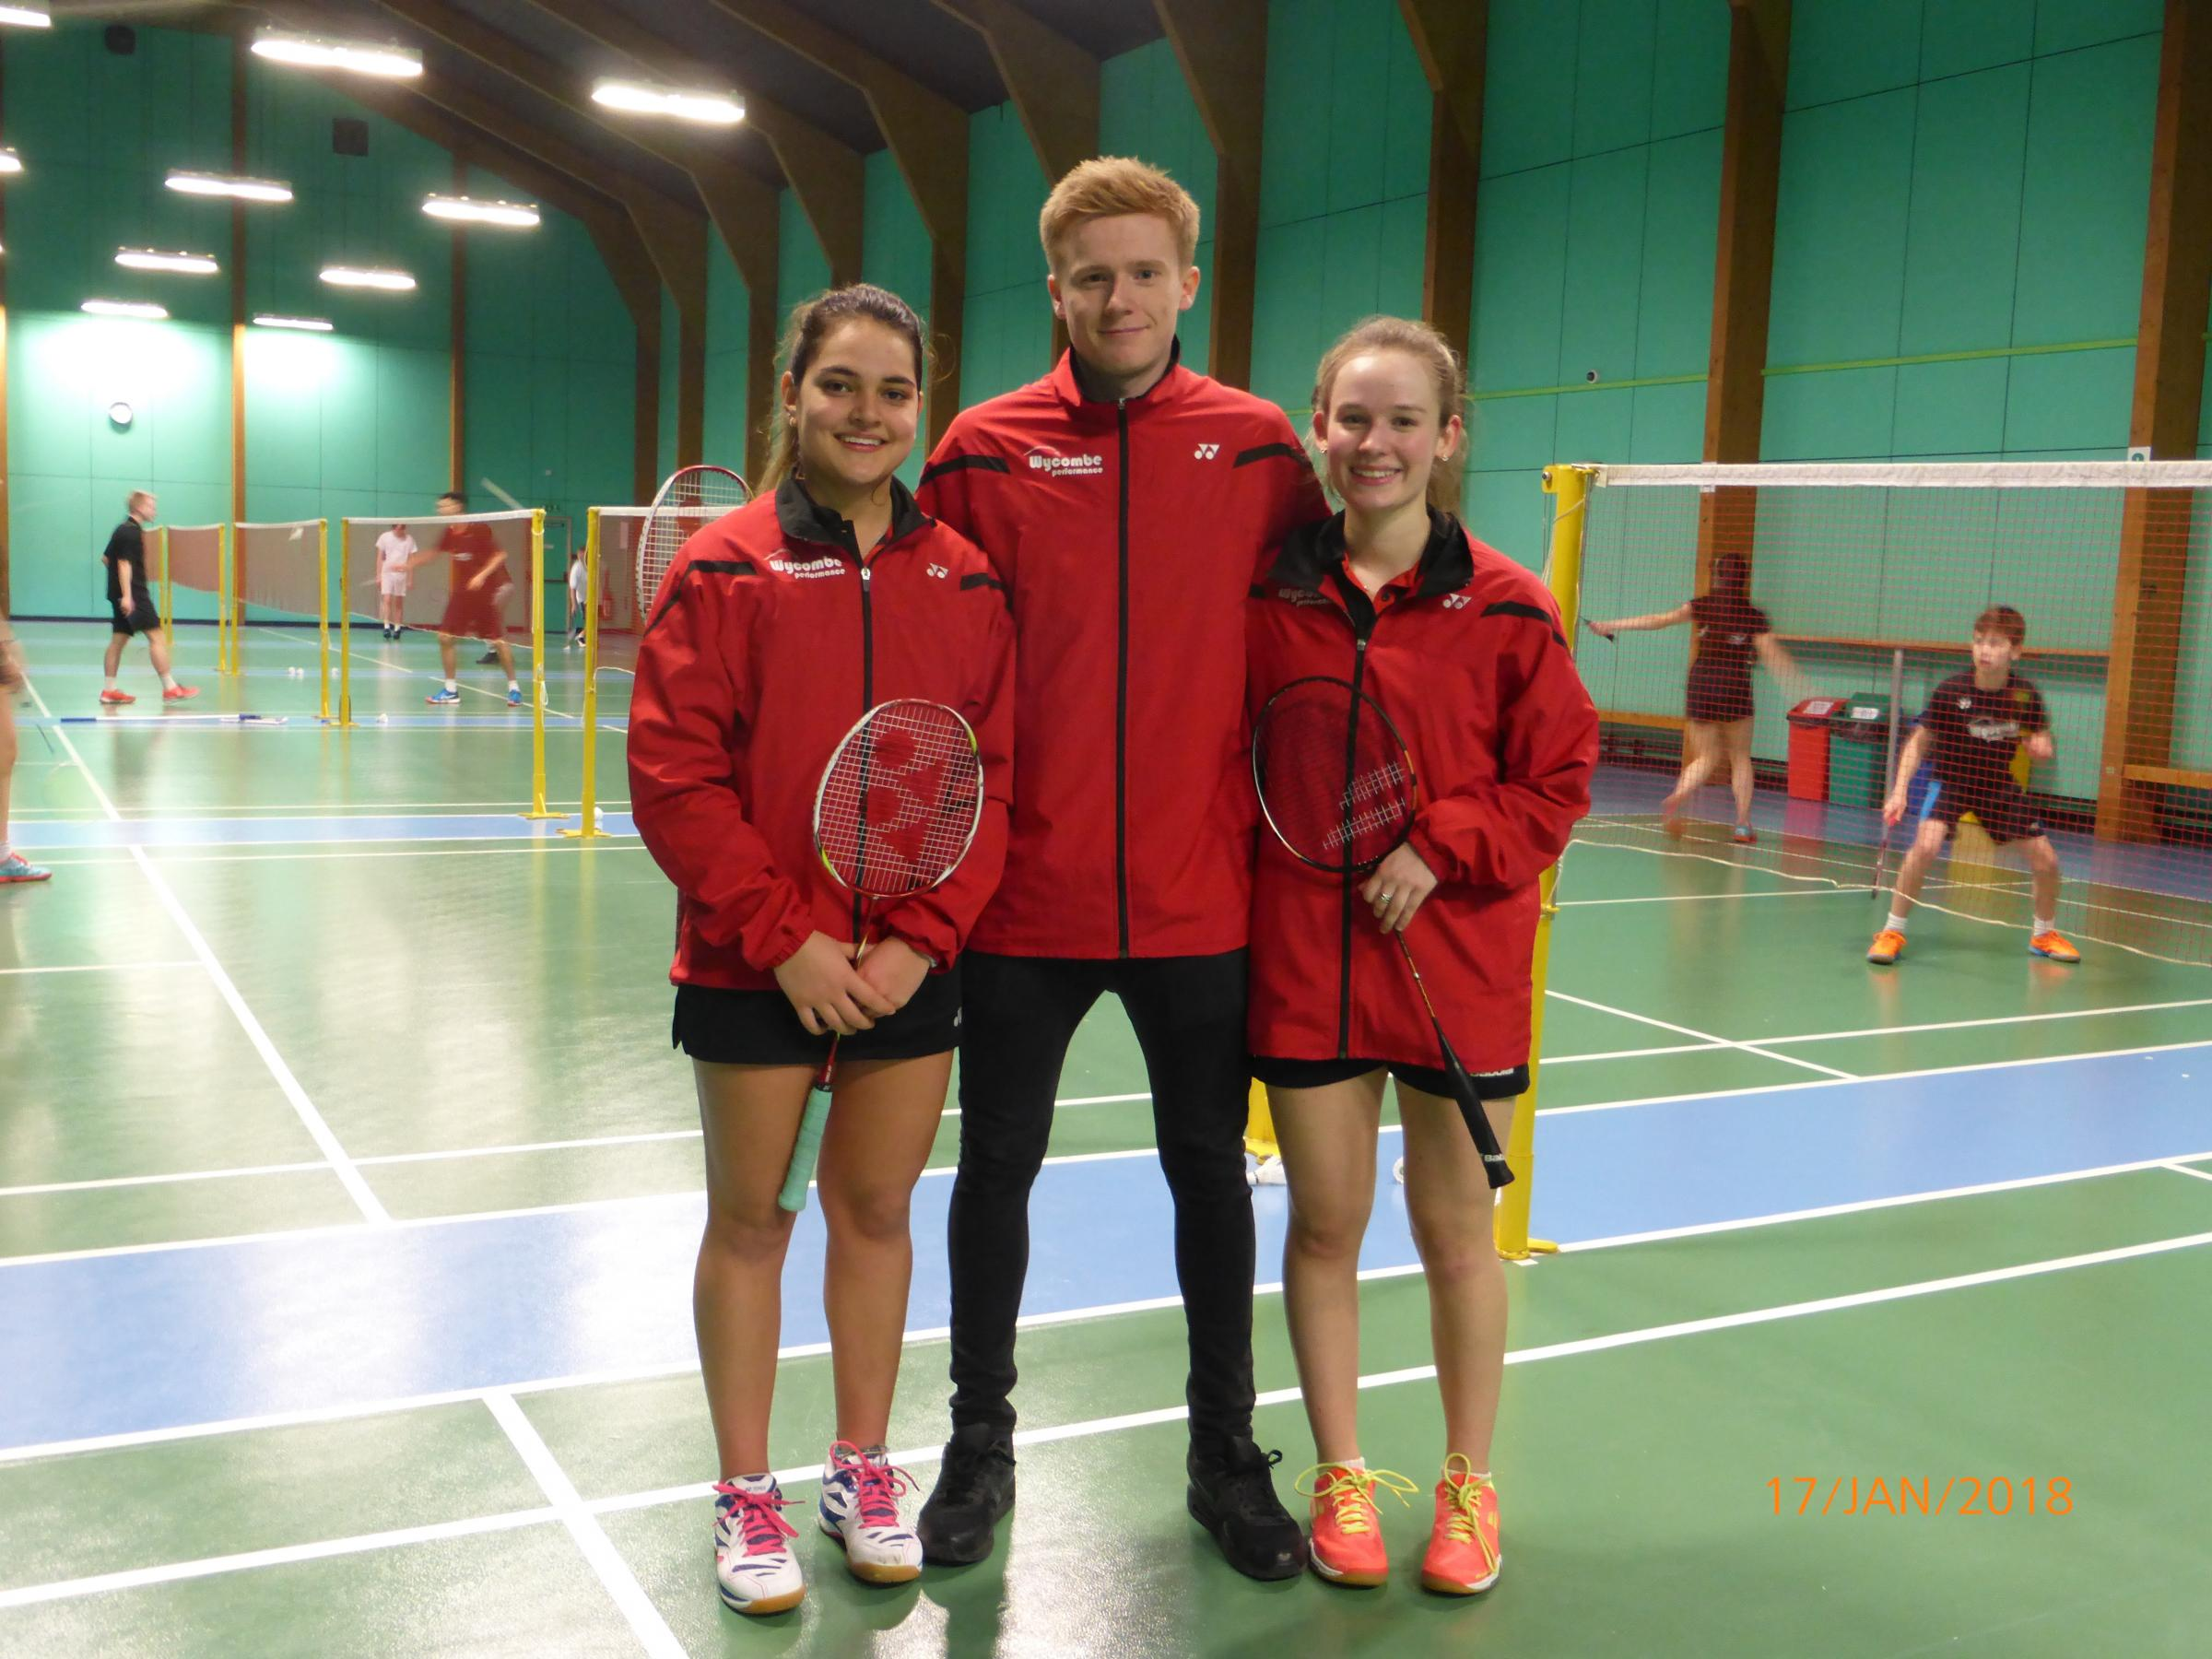 David Jones, Abigail Holden and Freya Patel-Redfern have been called up by England